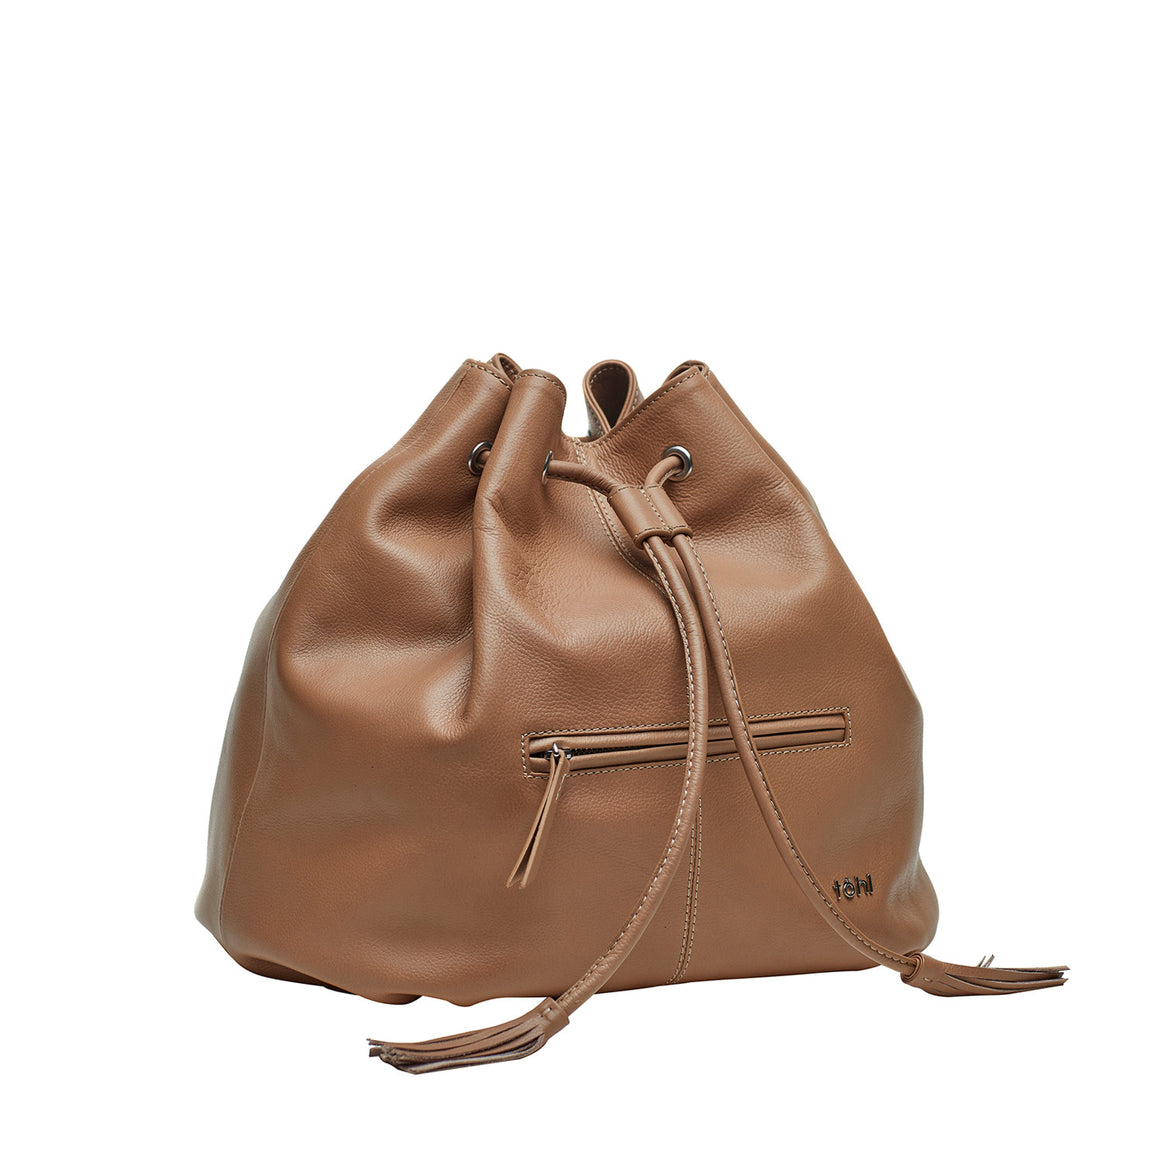 BP 0002 - TOHL MONTAUK WOMEN'S DRAWCORD BUCKET BAG - NUDE